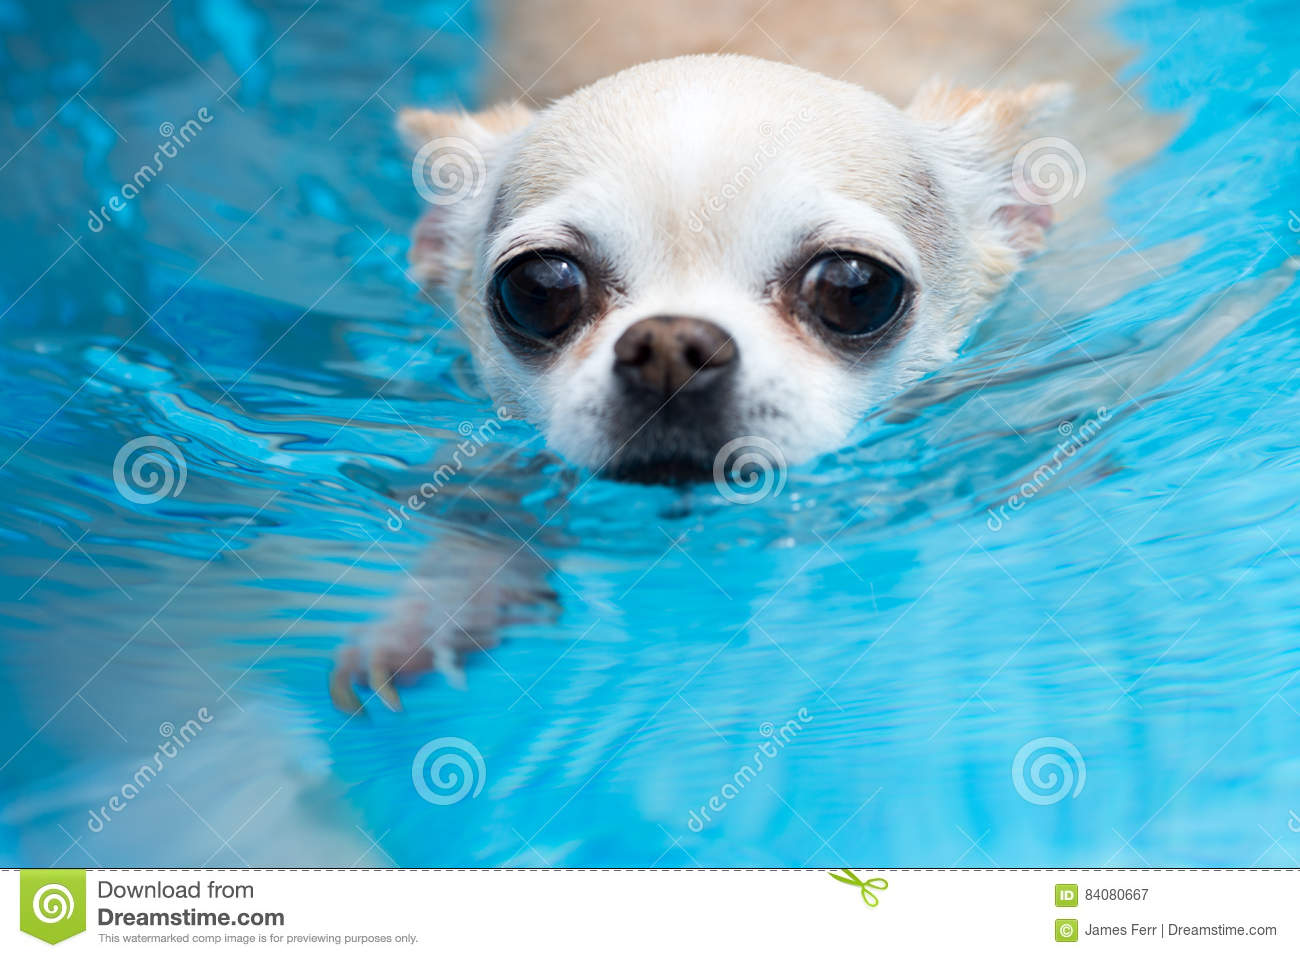 chihuahua swimming looking concerned stock image image. Black Bedroom Furniture Sets. Home Design Ideas